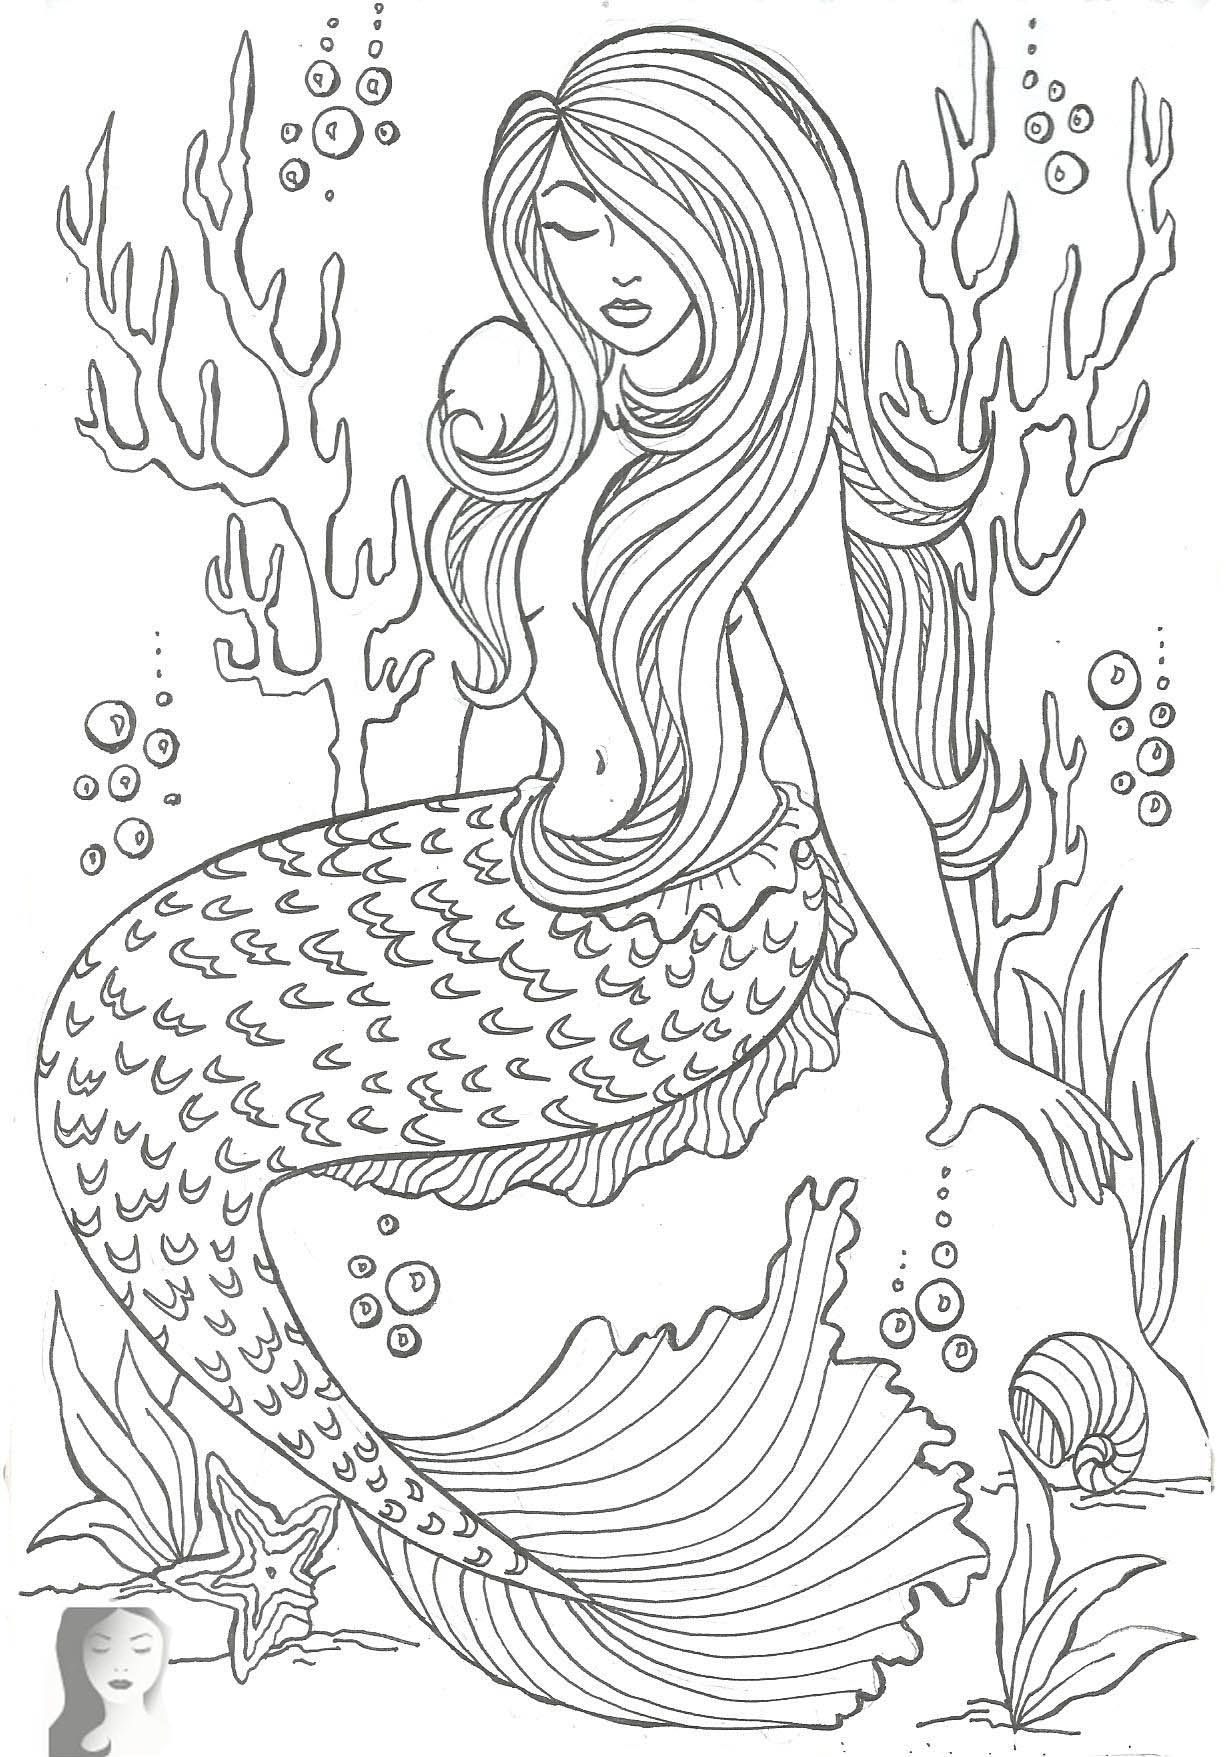 Mermaid Coloring Page Pages For Adults And Mermaid Coloring Pages Realistic Mermaid Mermaid Coloring Book